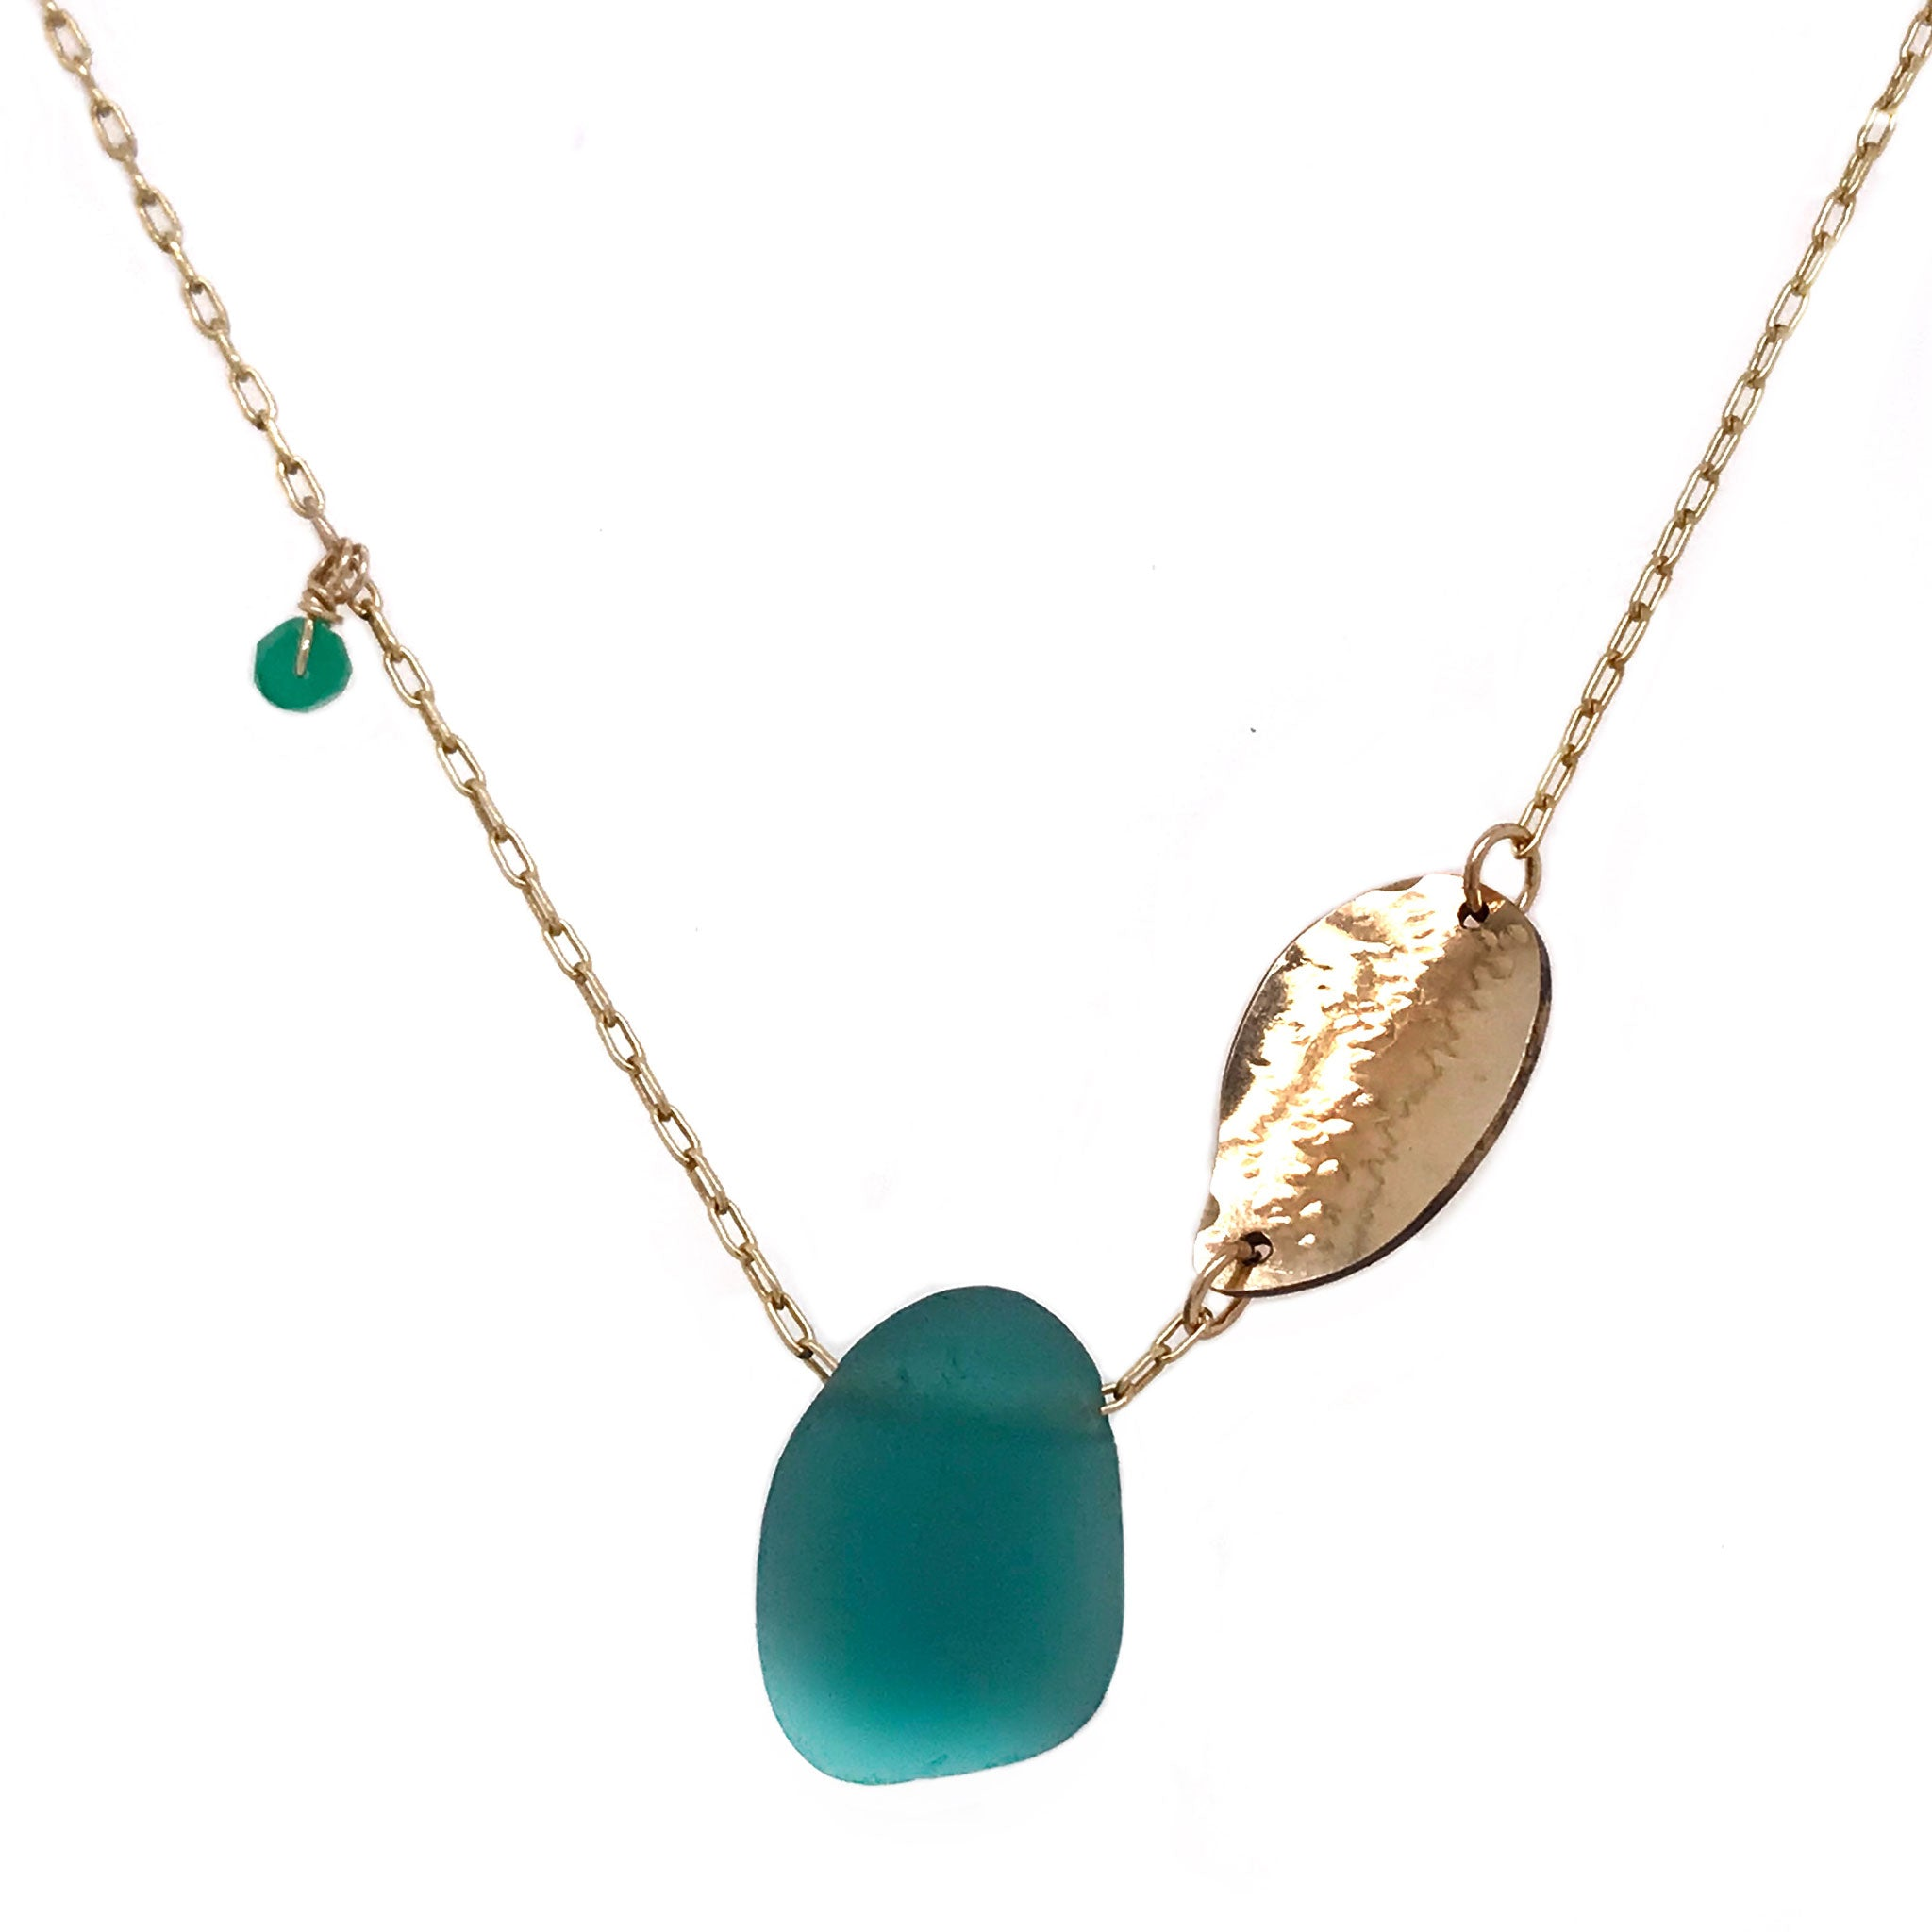 teal green seaglass necklace with gold leaf charm Kriket Broadhurst jewellery